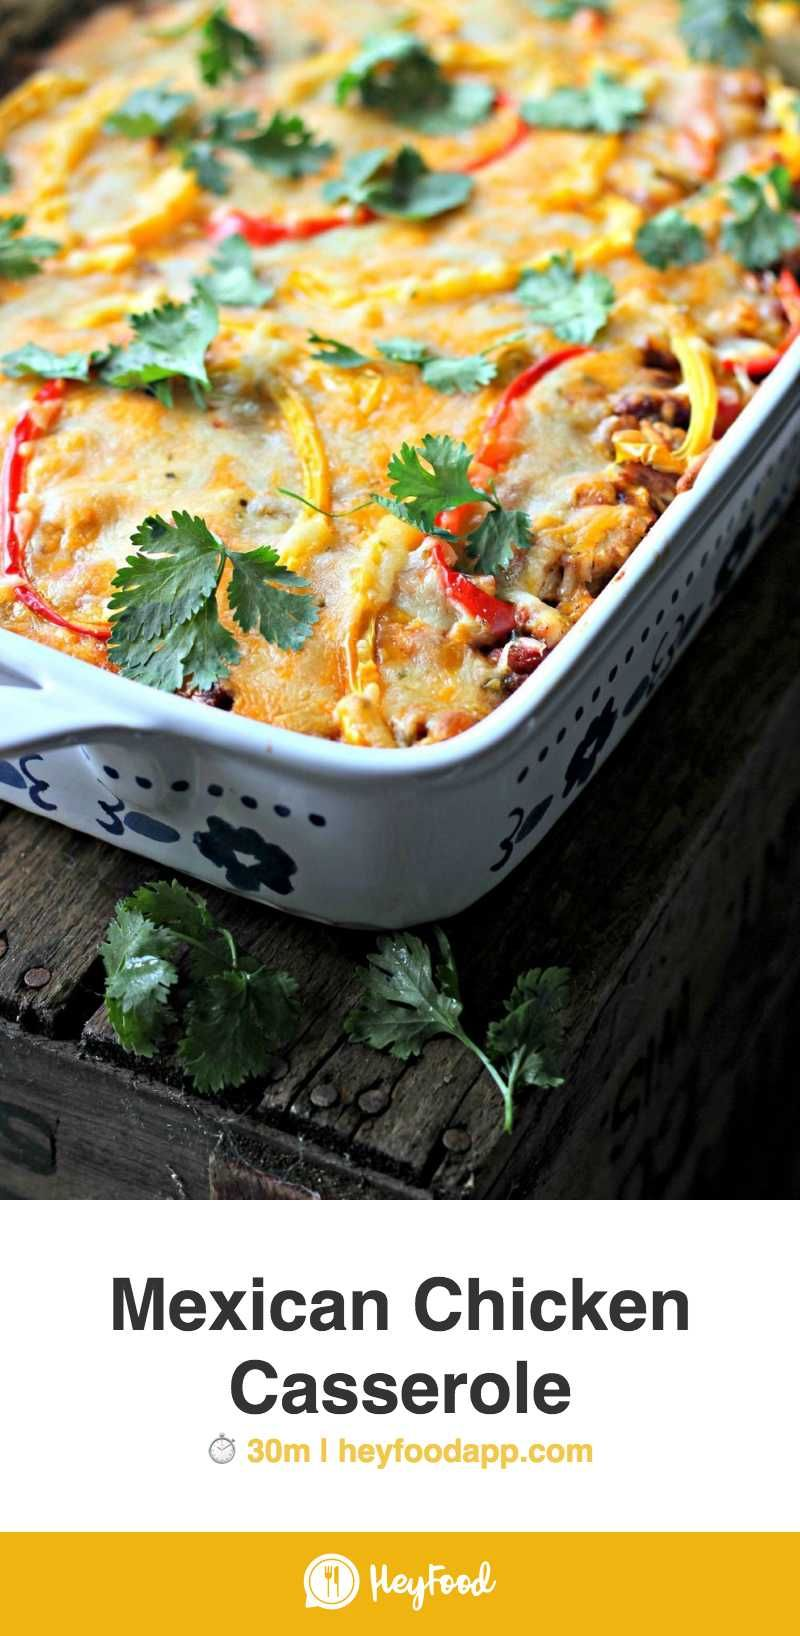 Mexican Chicken Casserole     #mealpreplife #cookery #recipetesting #chow #cookbook #healthycooking #whaticooked #mealpreps  Recipe credit: The Gourmet RD #mexicandishes